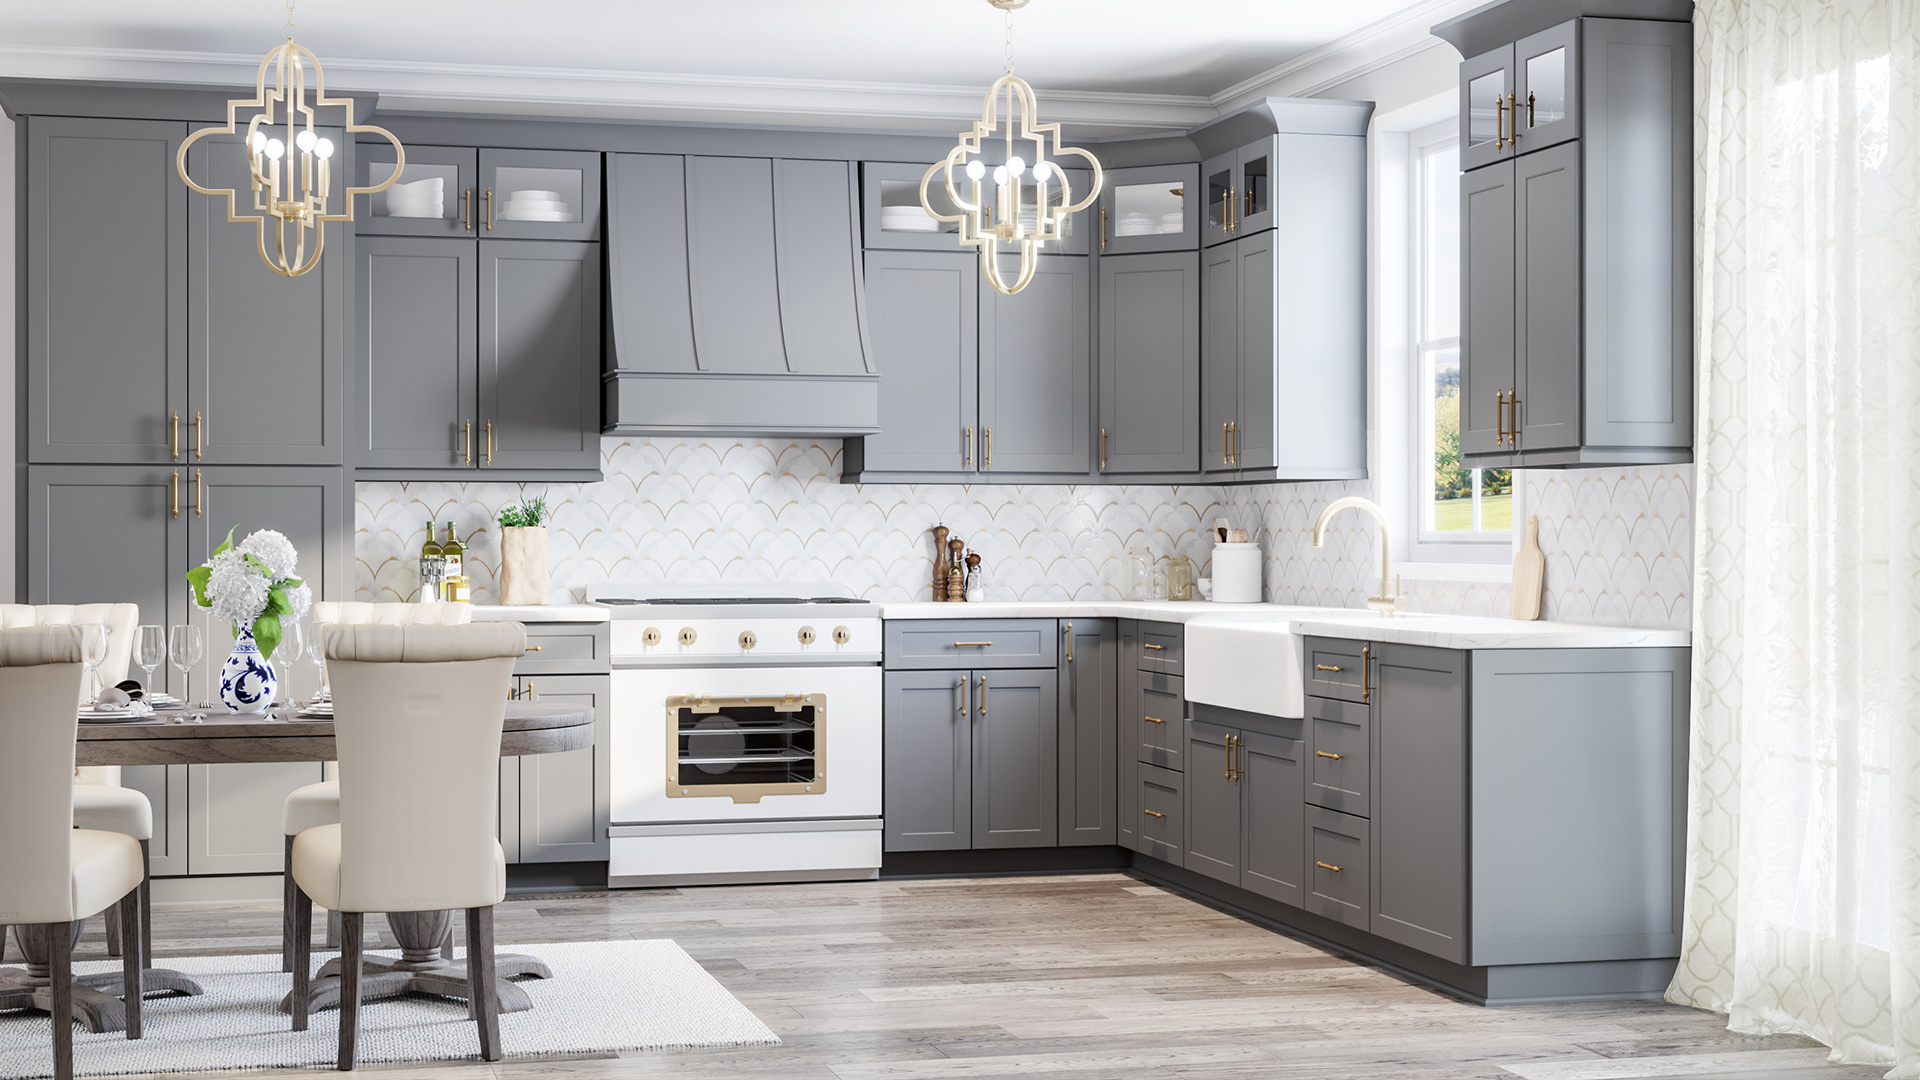 How much does a range hood cost?